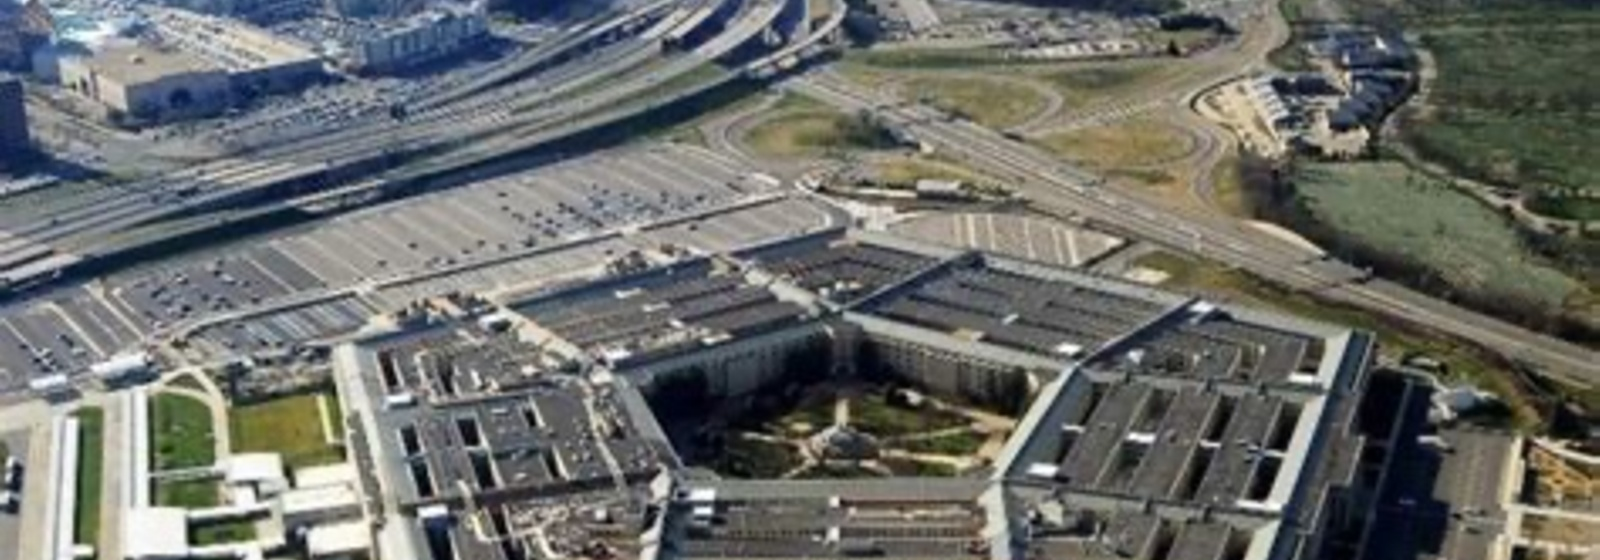 Pentagon Allows Taxpayer-Funded Gender Transition for Military Members